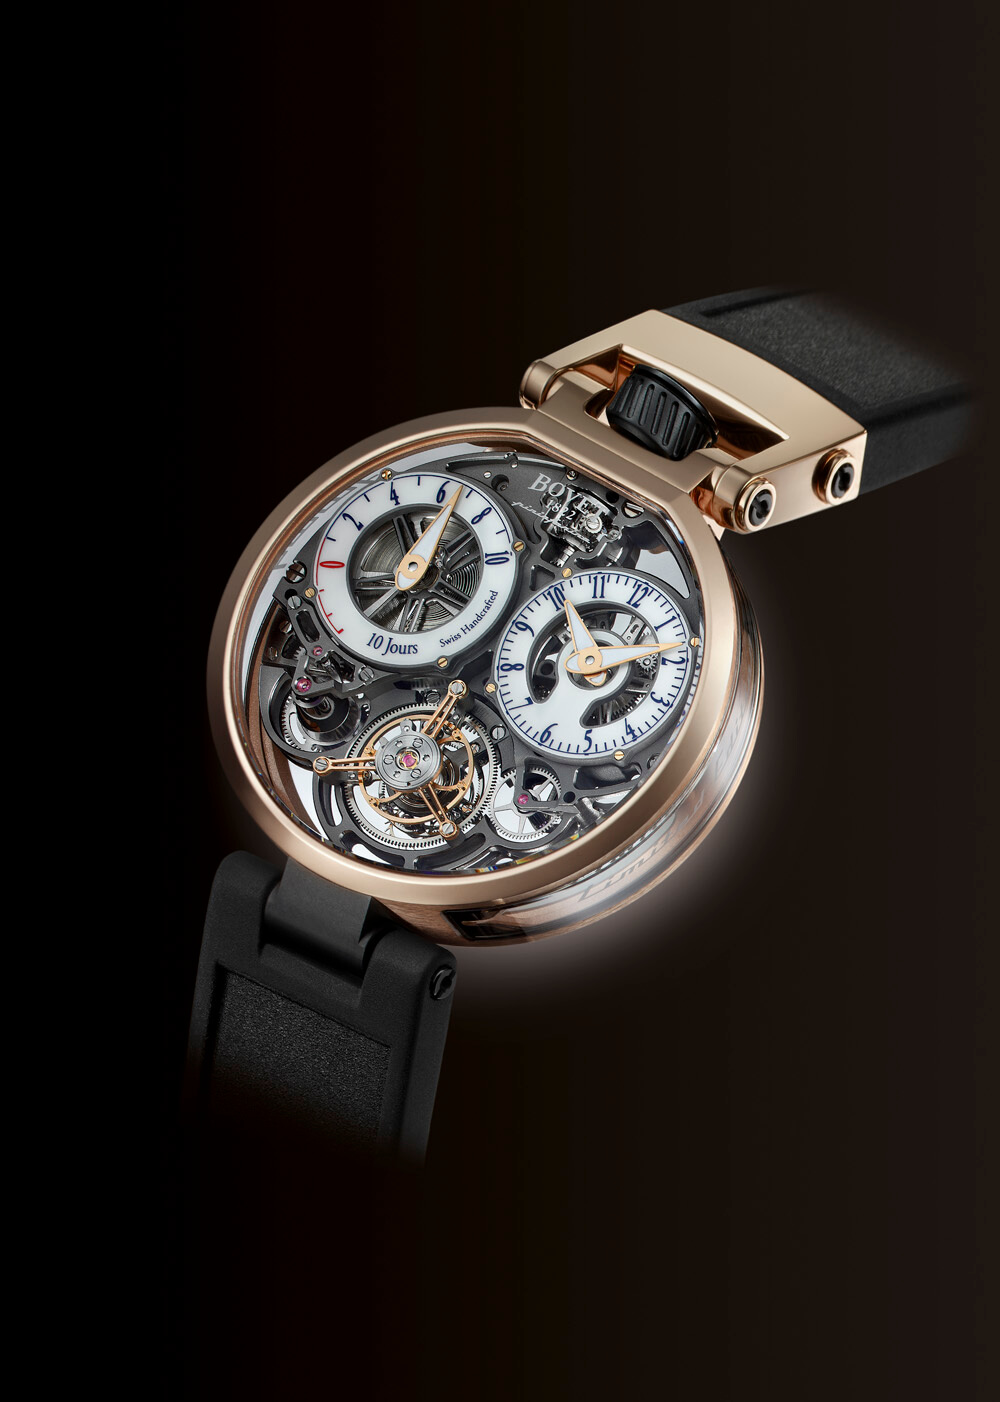 Bovet_Flying_Tourbillon_Ottanta_Sei_Red_Gold - ESCAPEMENT magazine - watch articles by Angus Davies